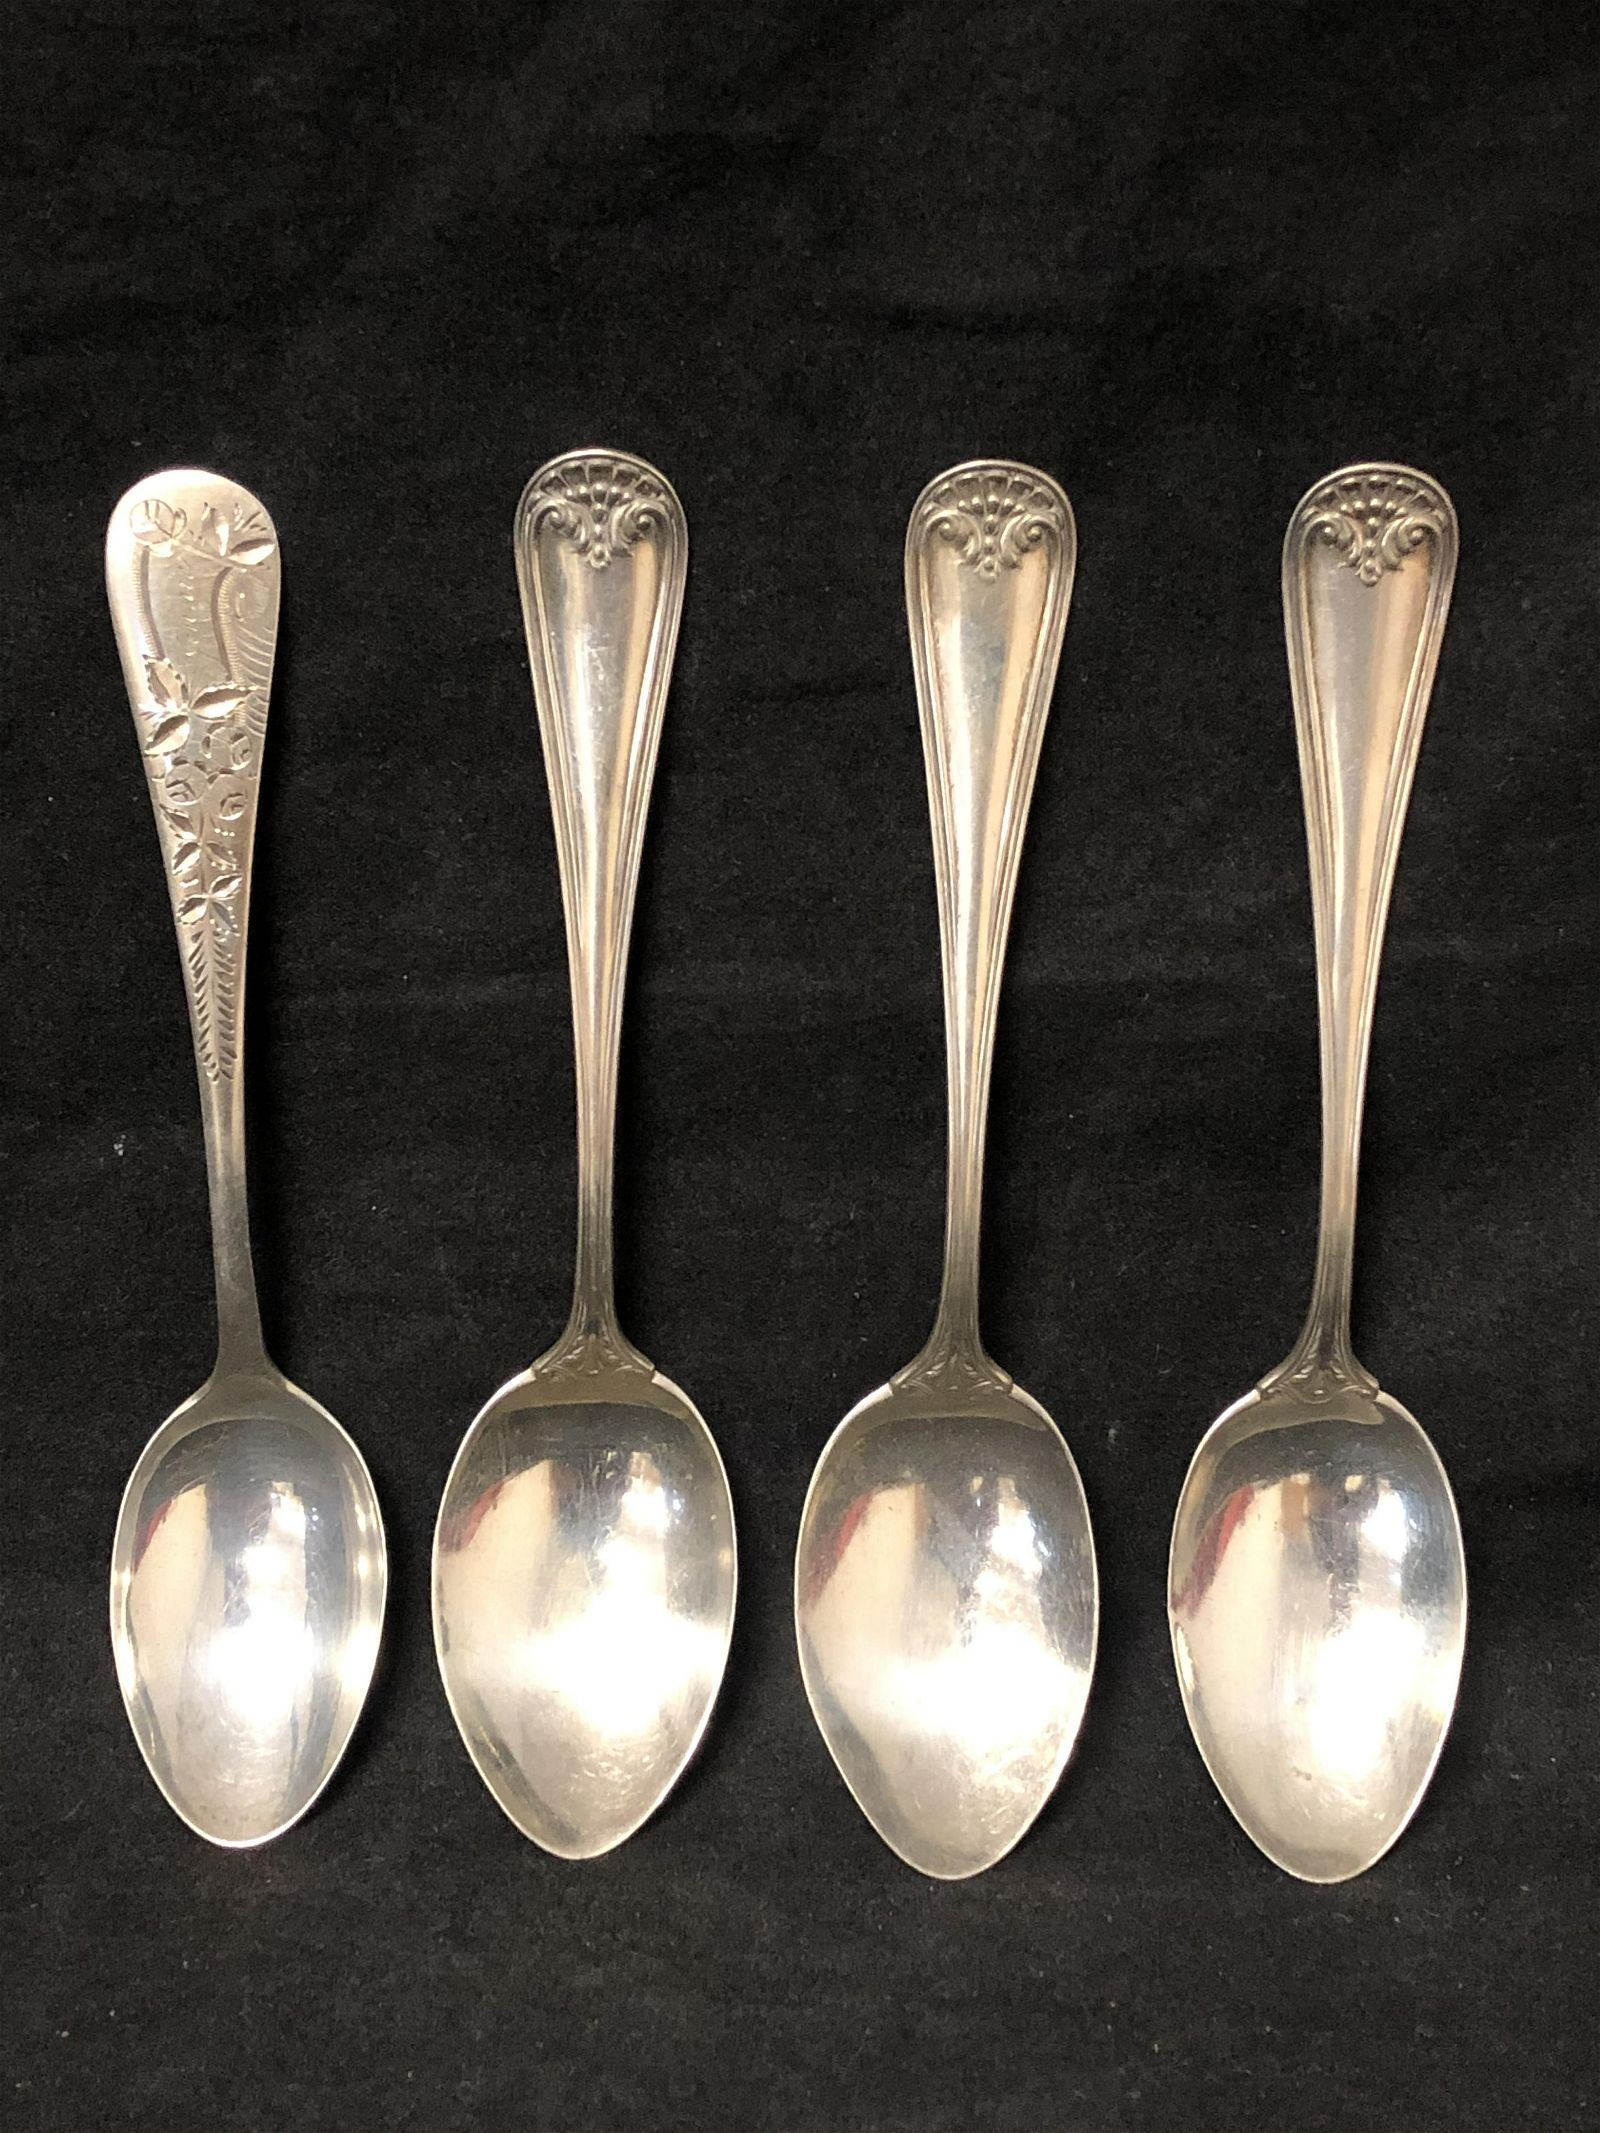 (4)Atq/Vtg Sterling Silver Spoons, 73.2g - Below Scrap